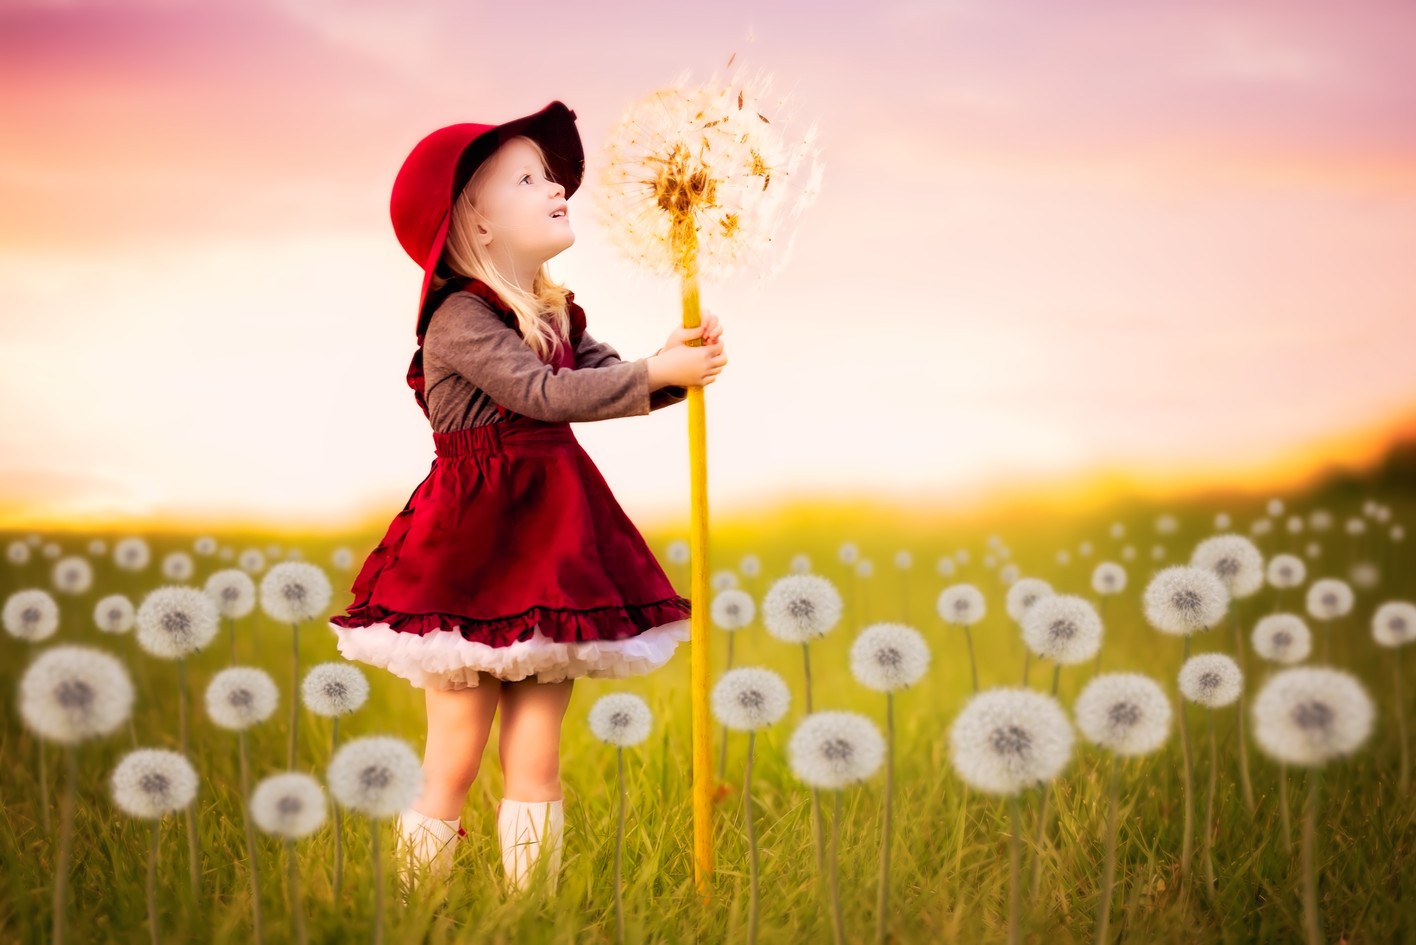 Whimsical fairytale children's dandilion picture